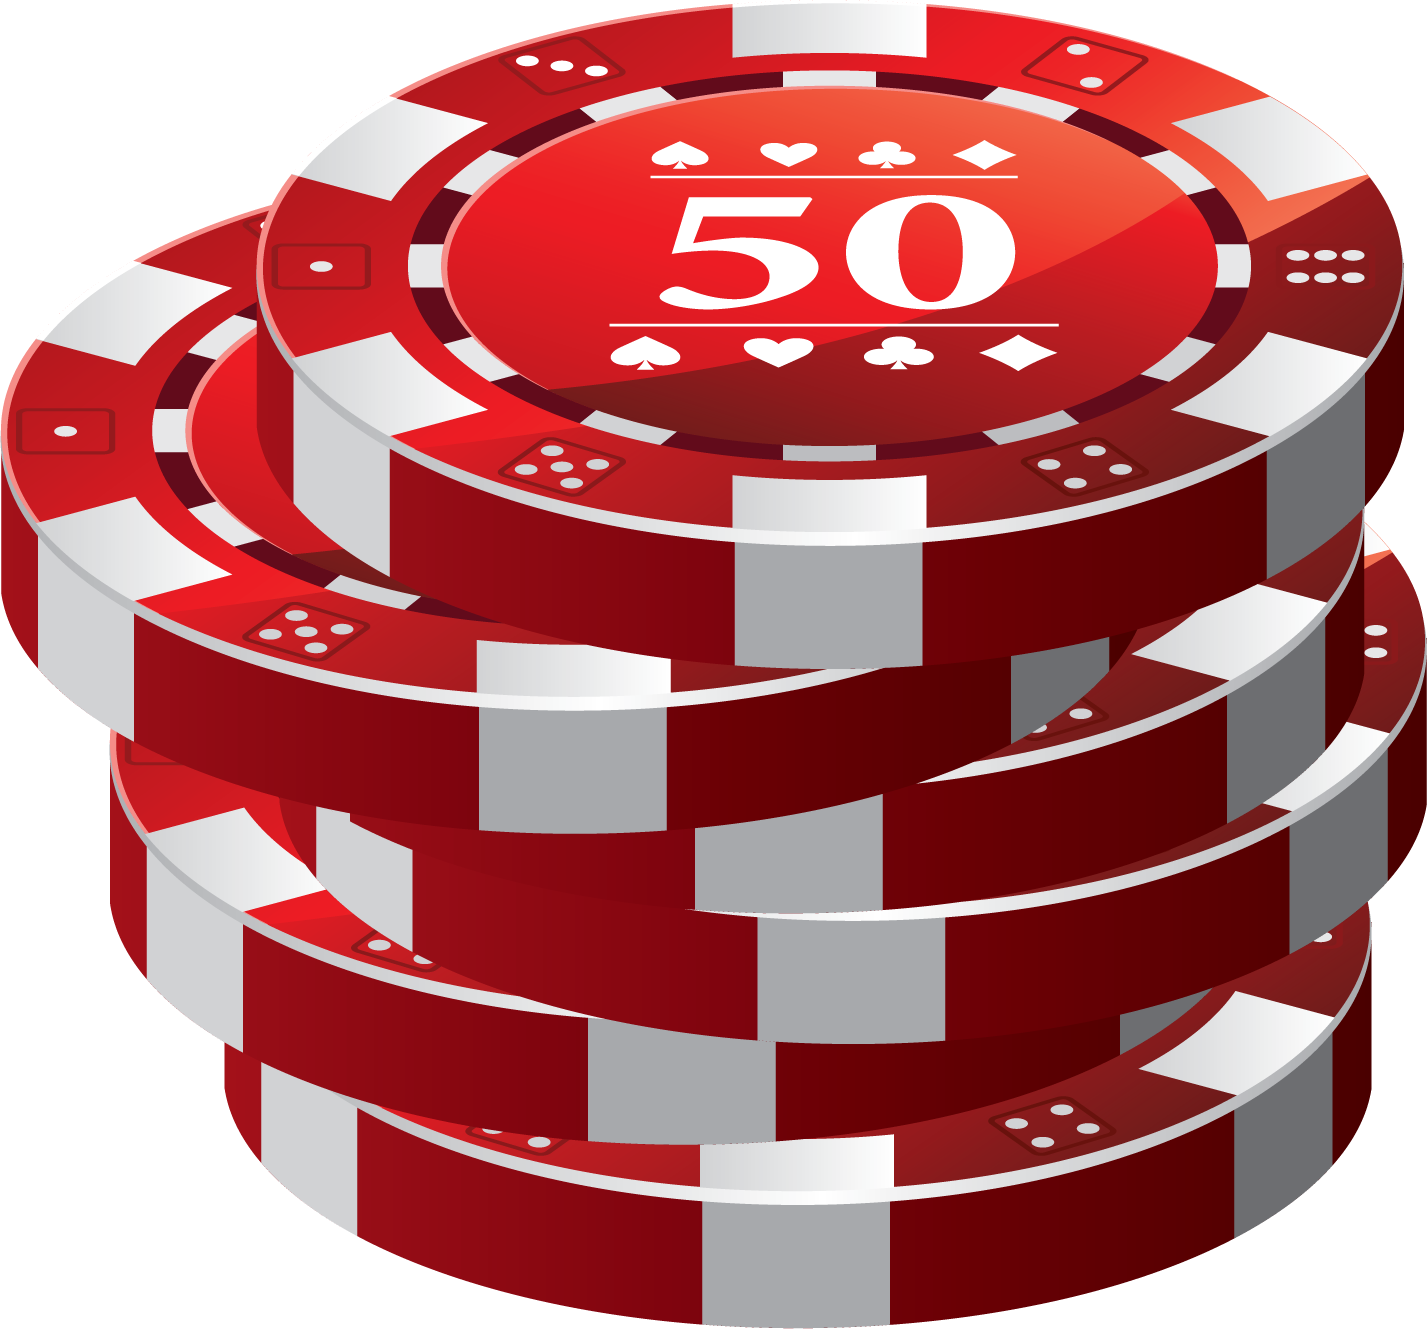 Poker Chips PNG Image Casino chips, Gambling party